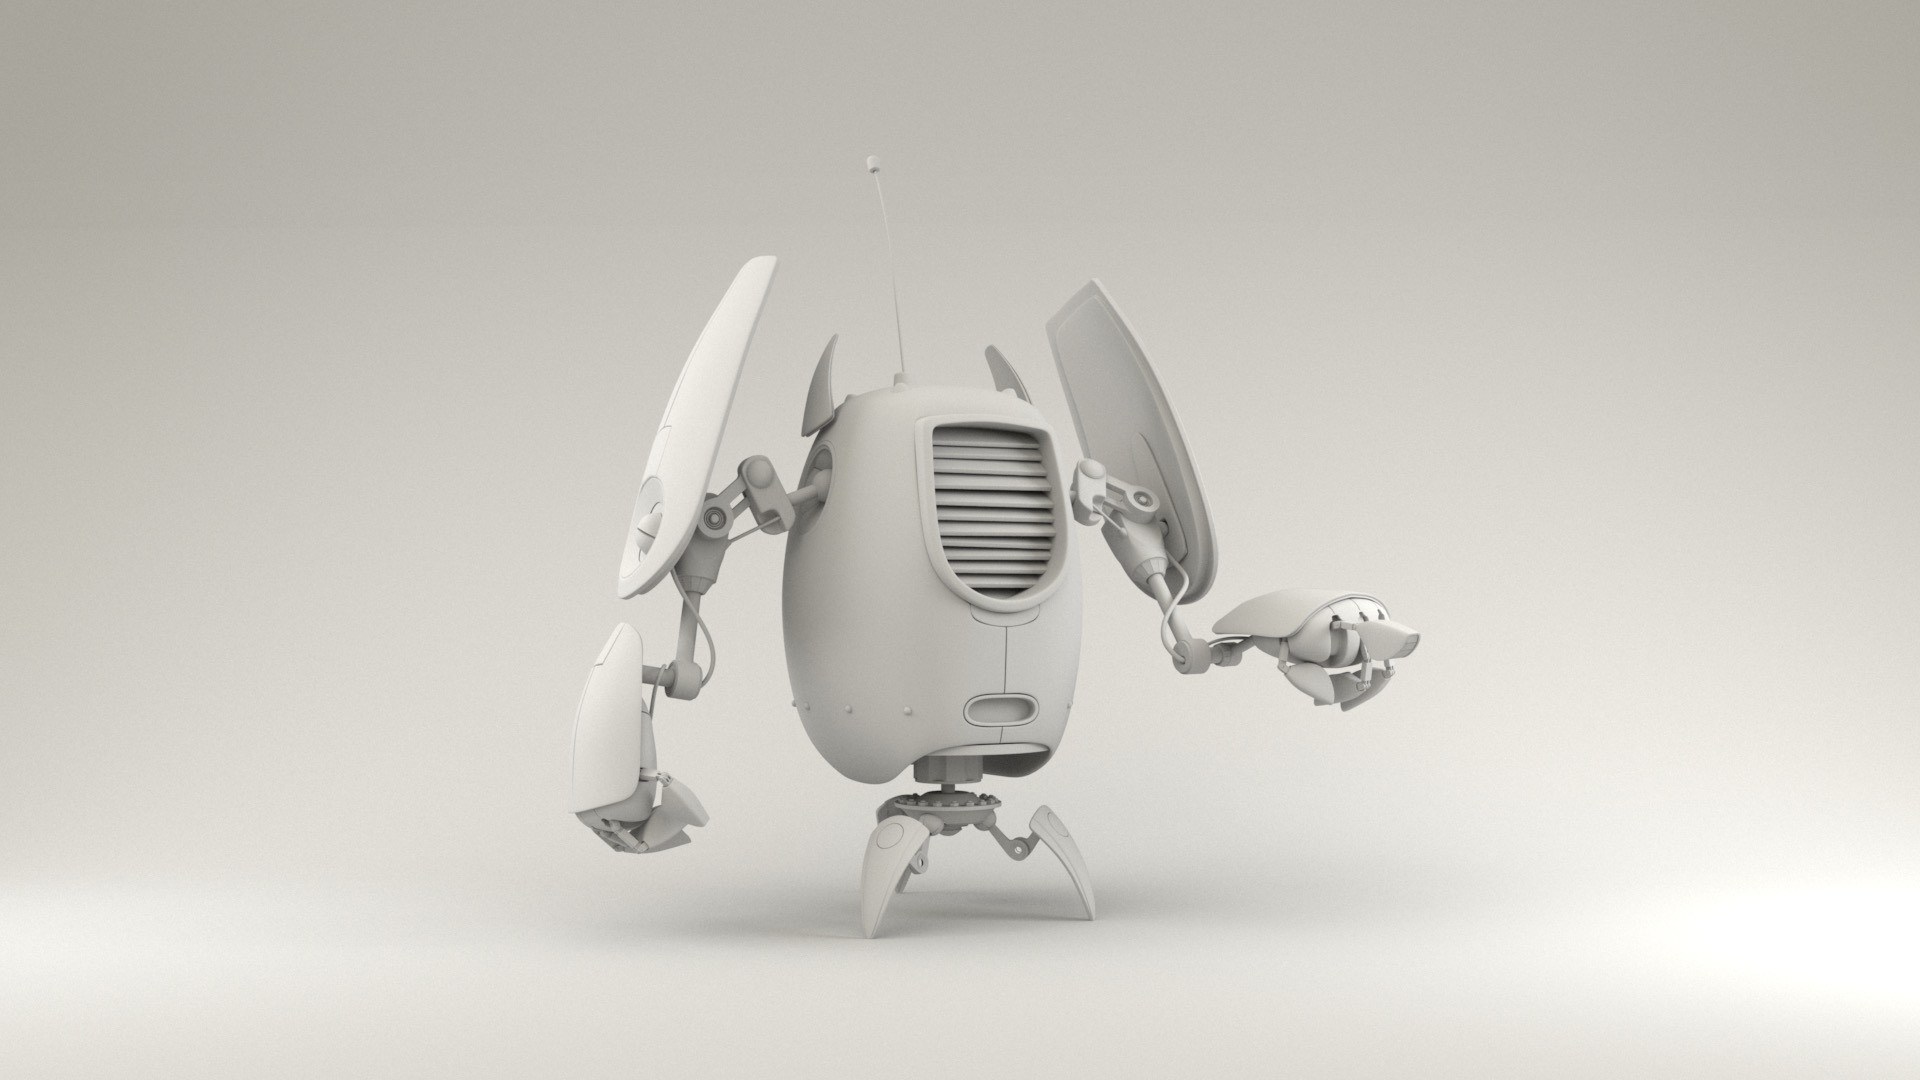 Figure 3: Robot base model provided by Pixar, rendered against a white cyclorama background using a basic skydome.